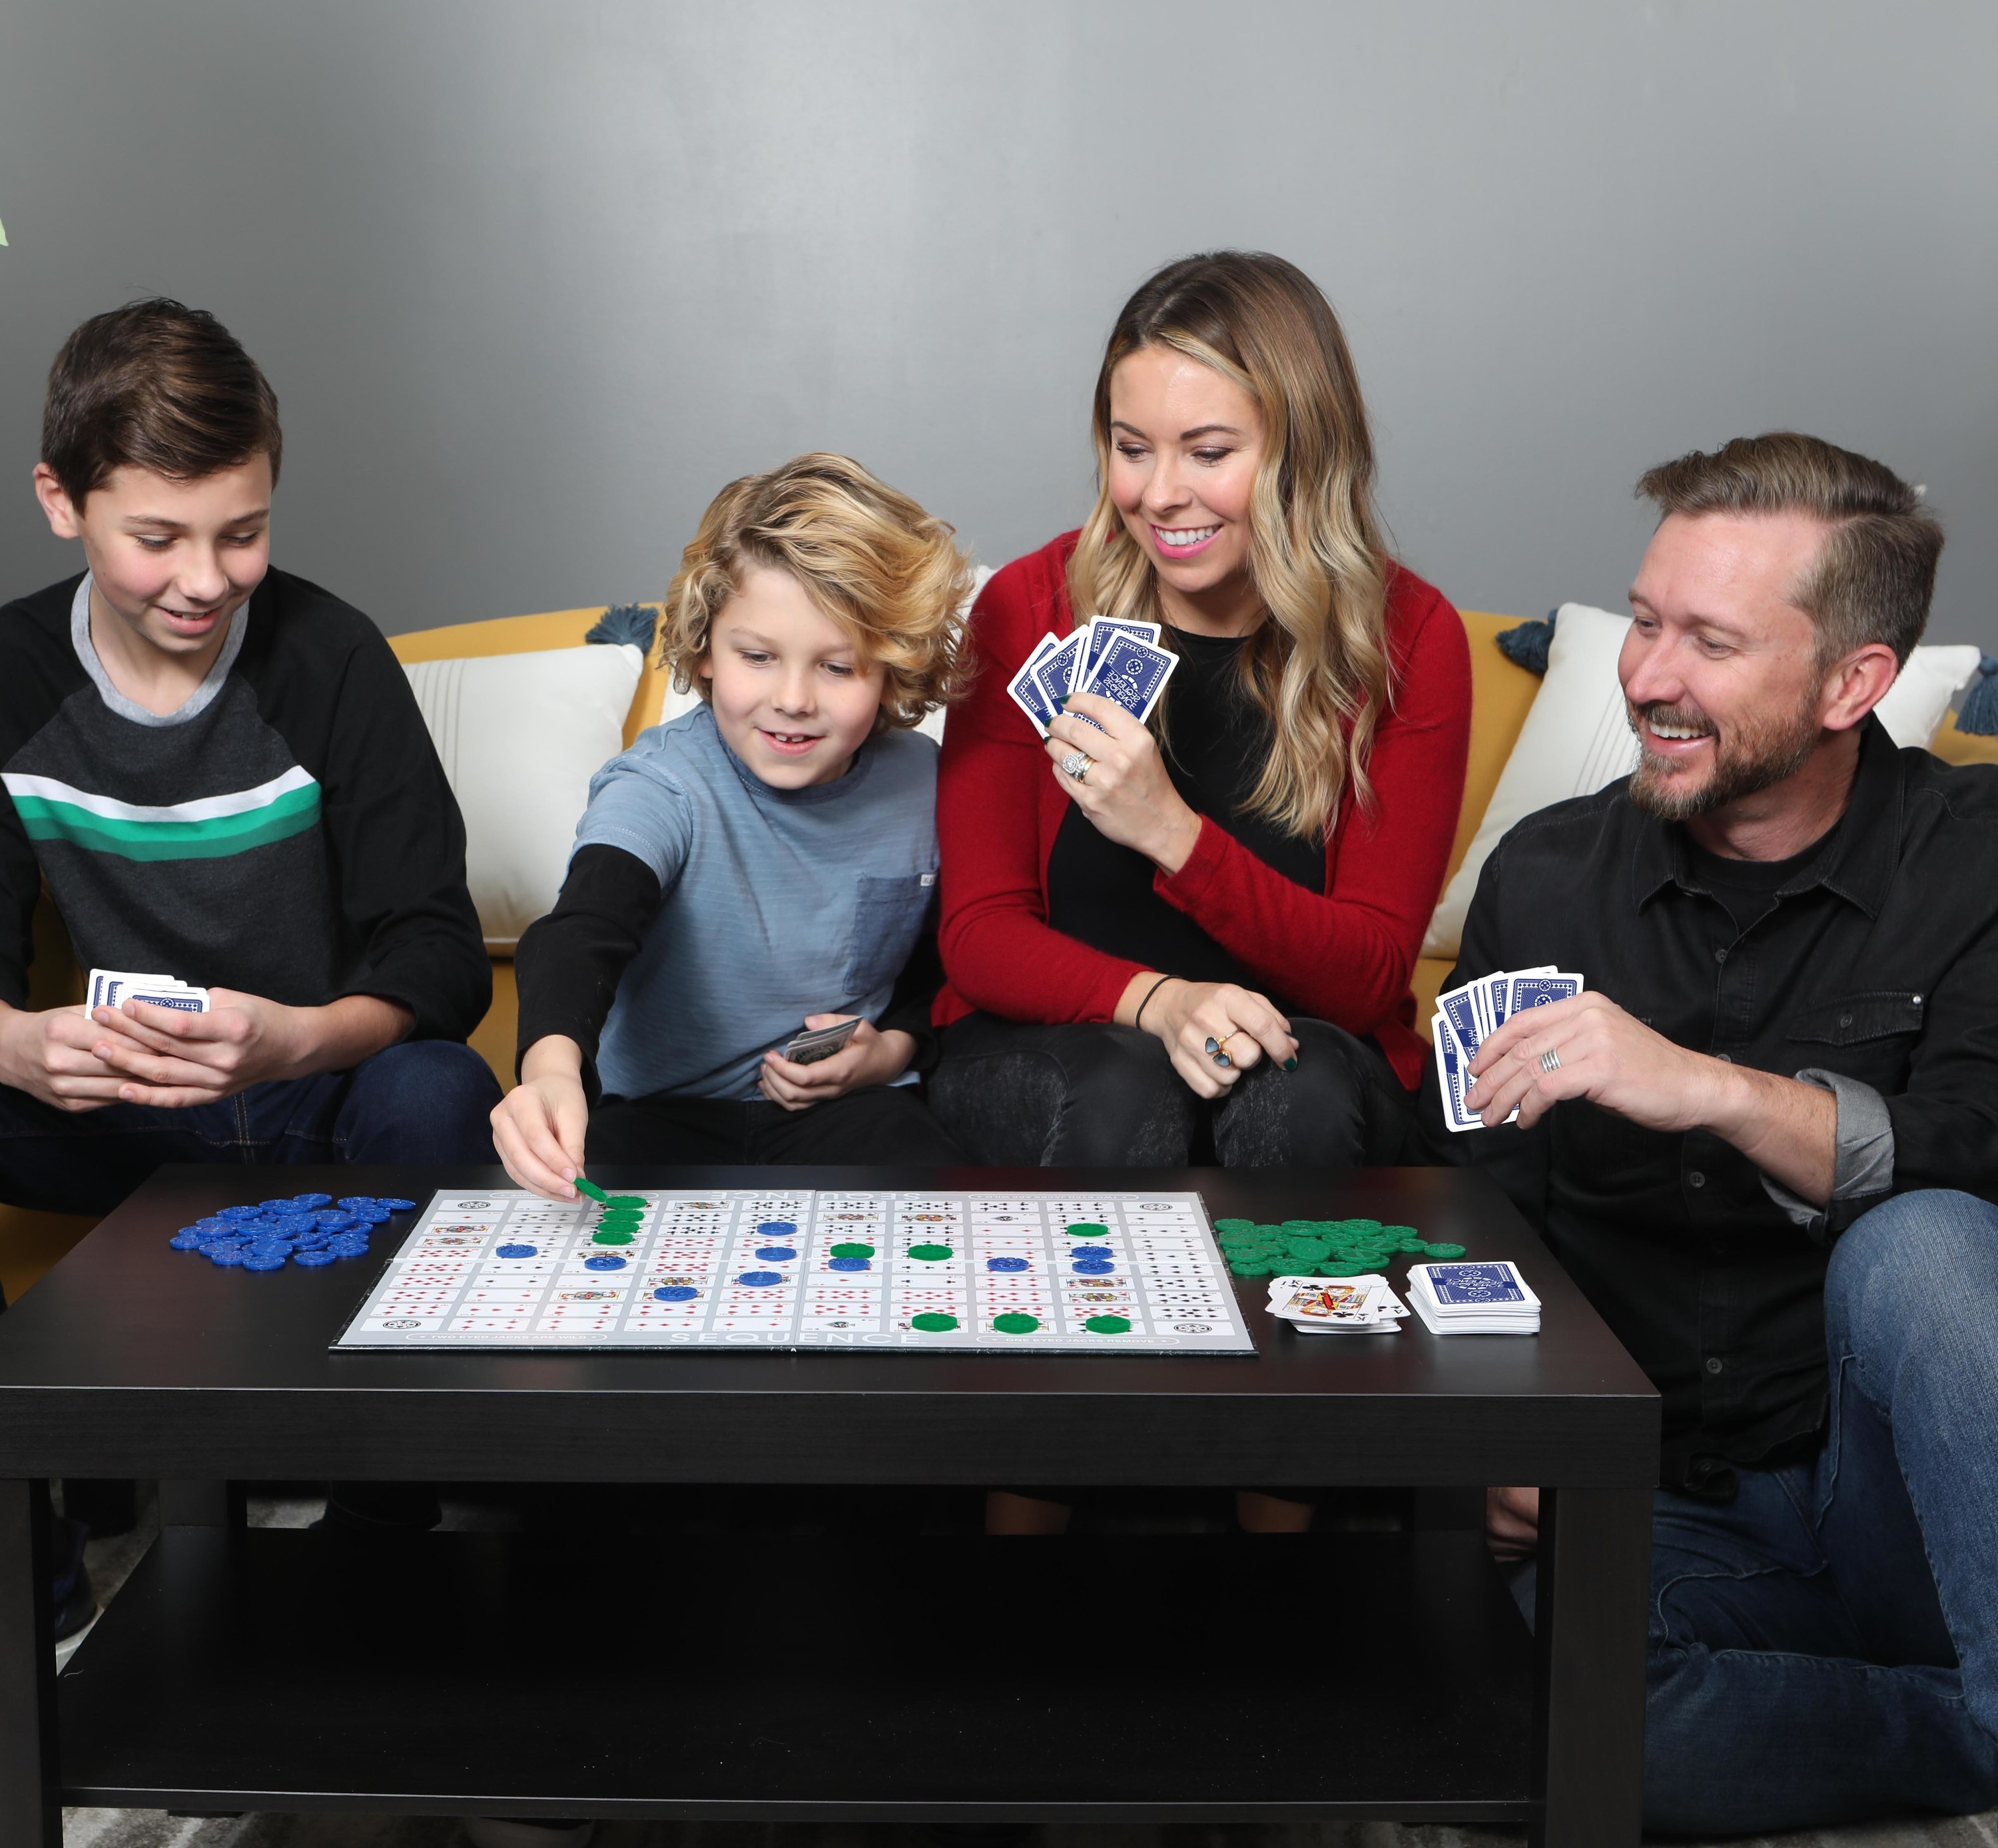 A family playing the game